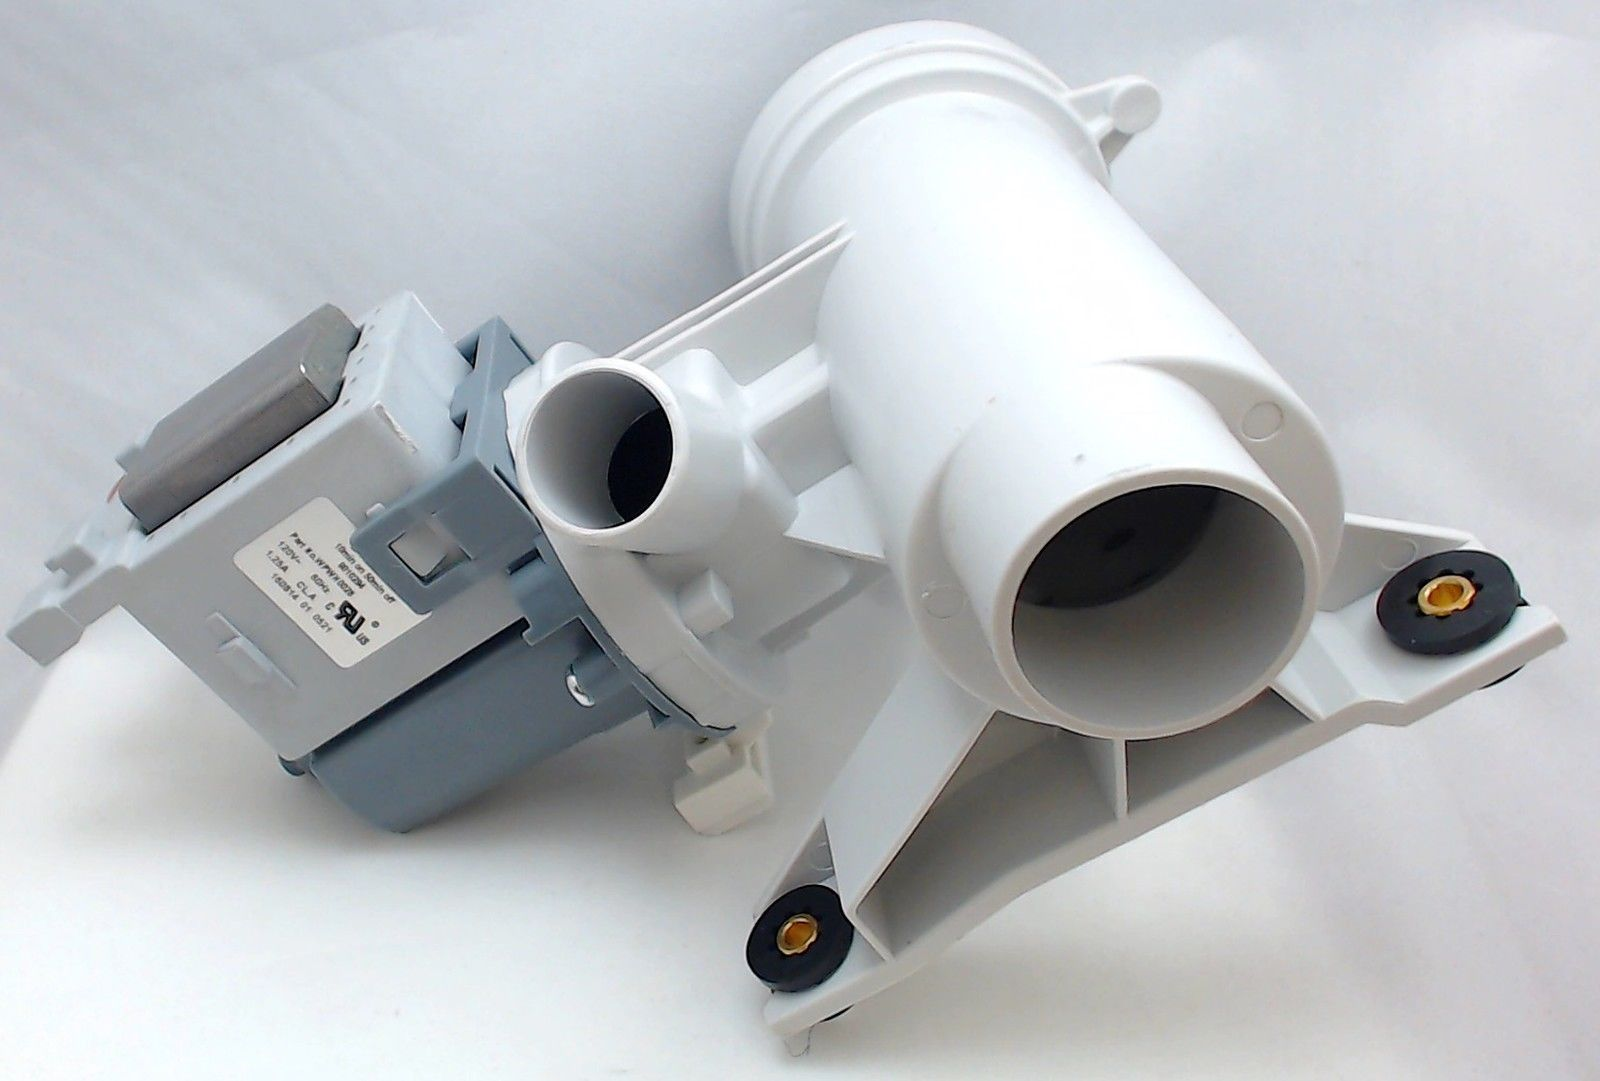 Washer drain pump motor for general electric ap4324598 for Washing machine pump motor